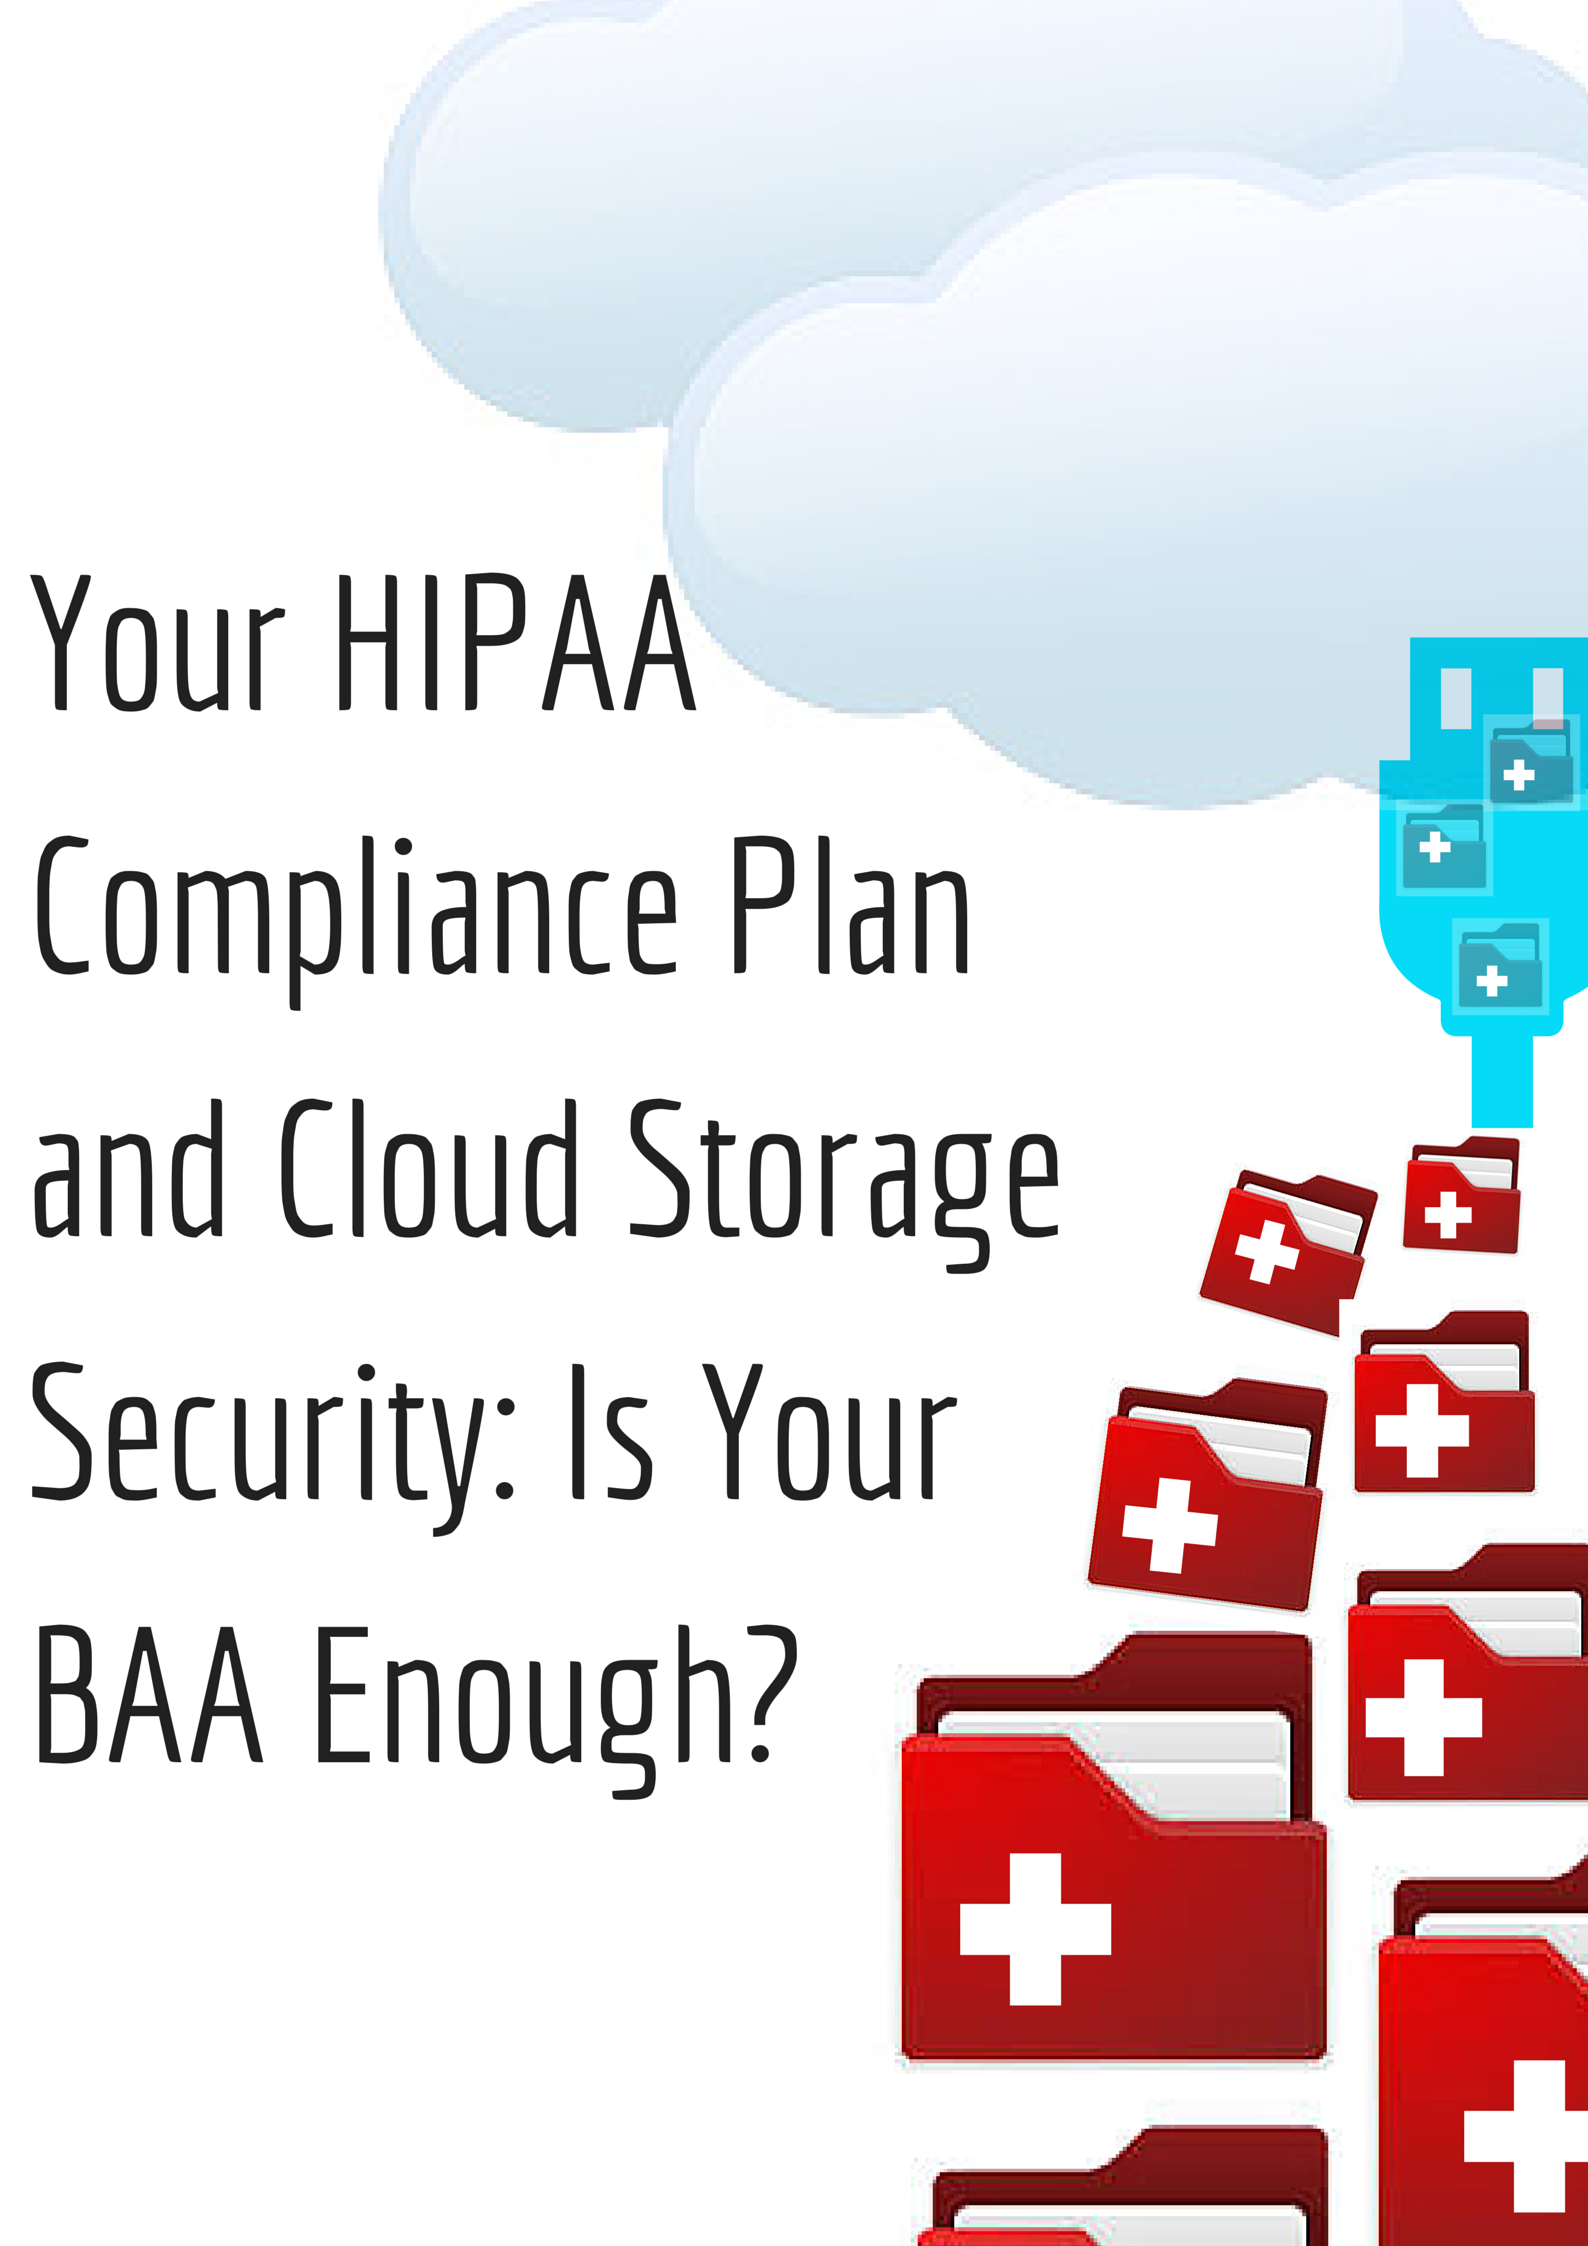 Your HIPAA Compliance Plan and Cloud Storage Security Is